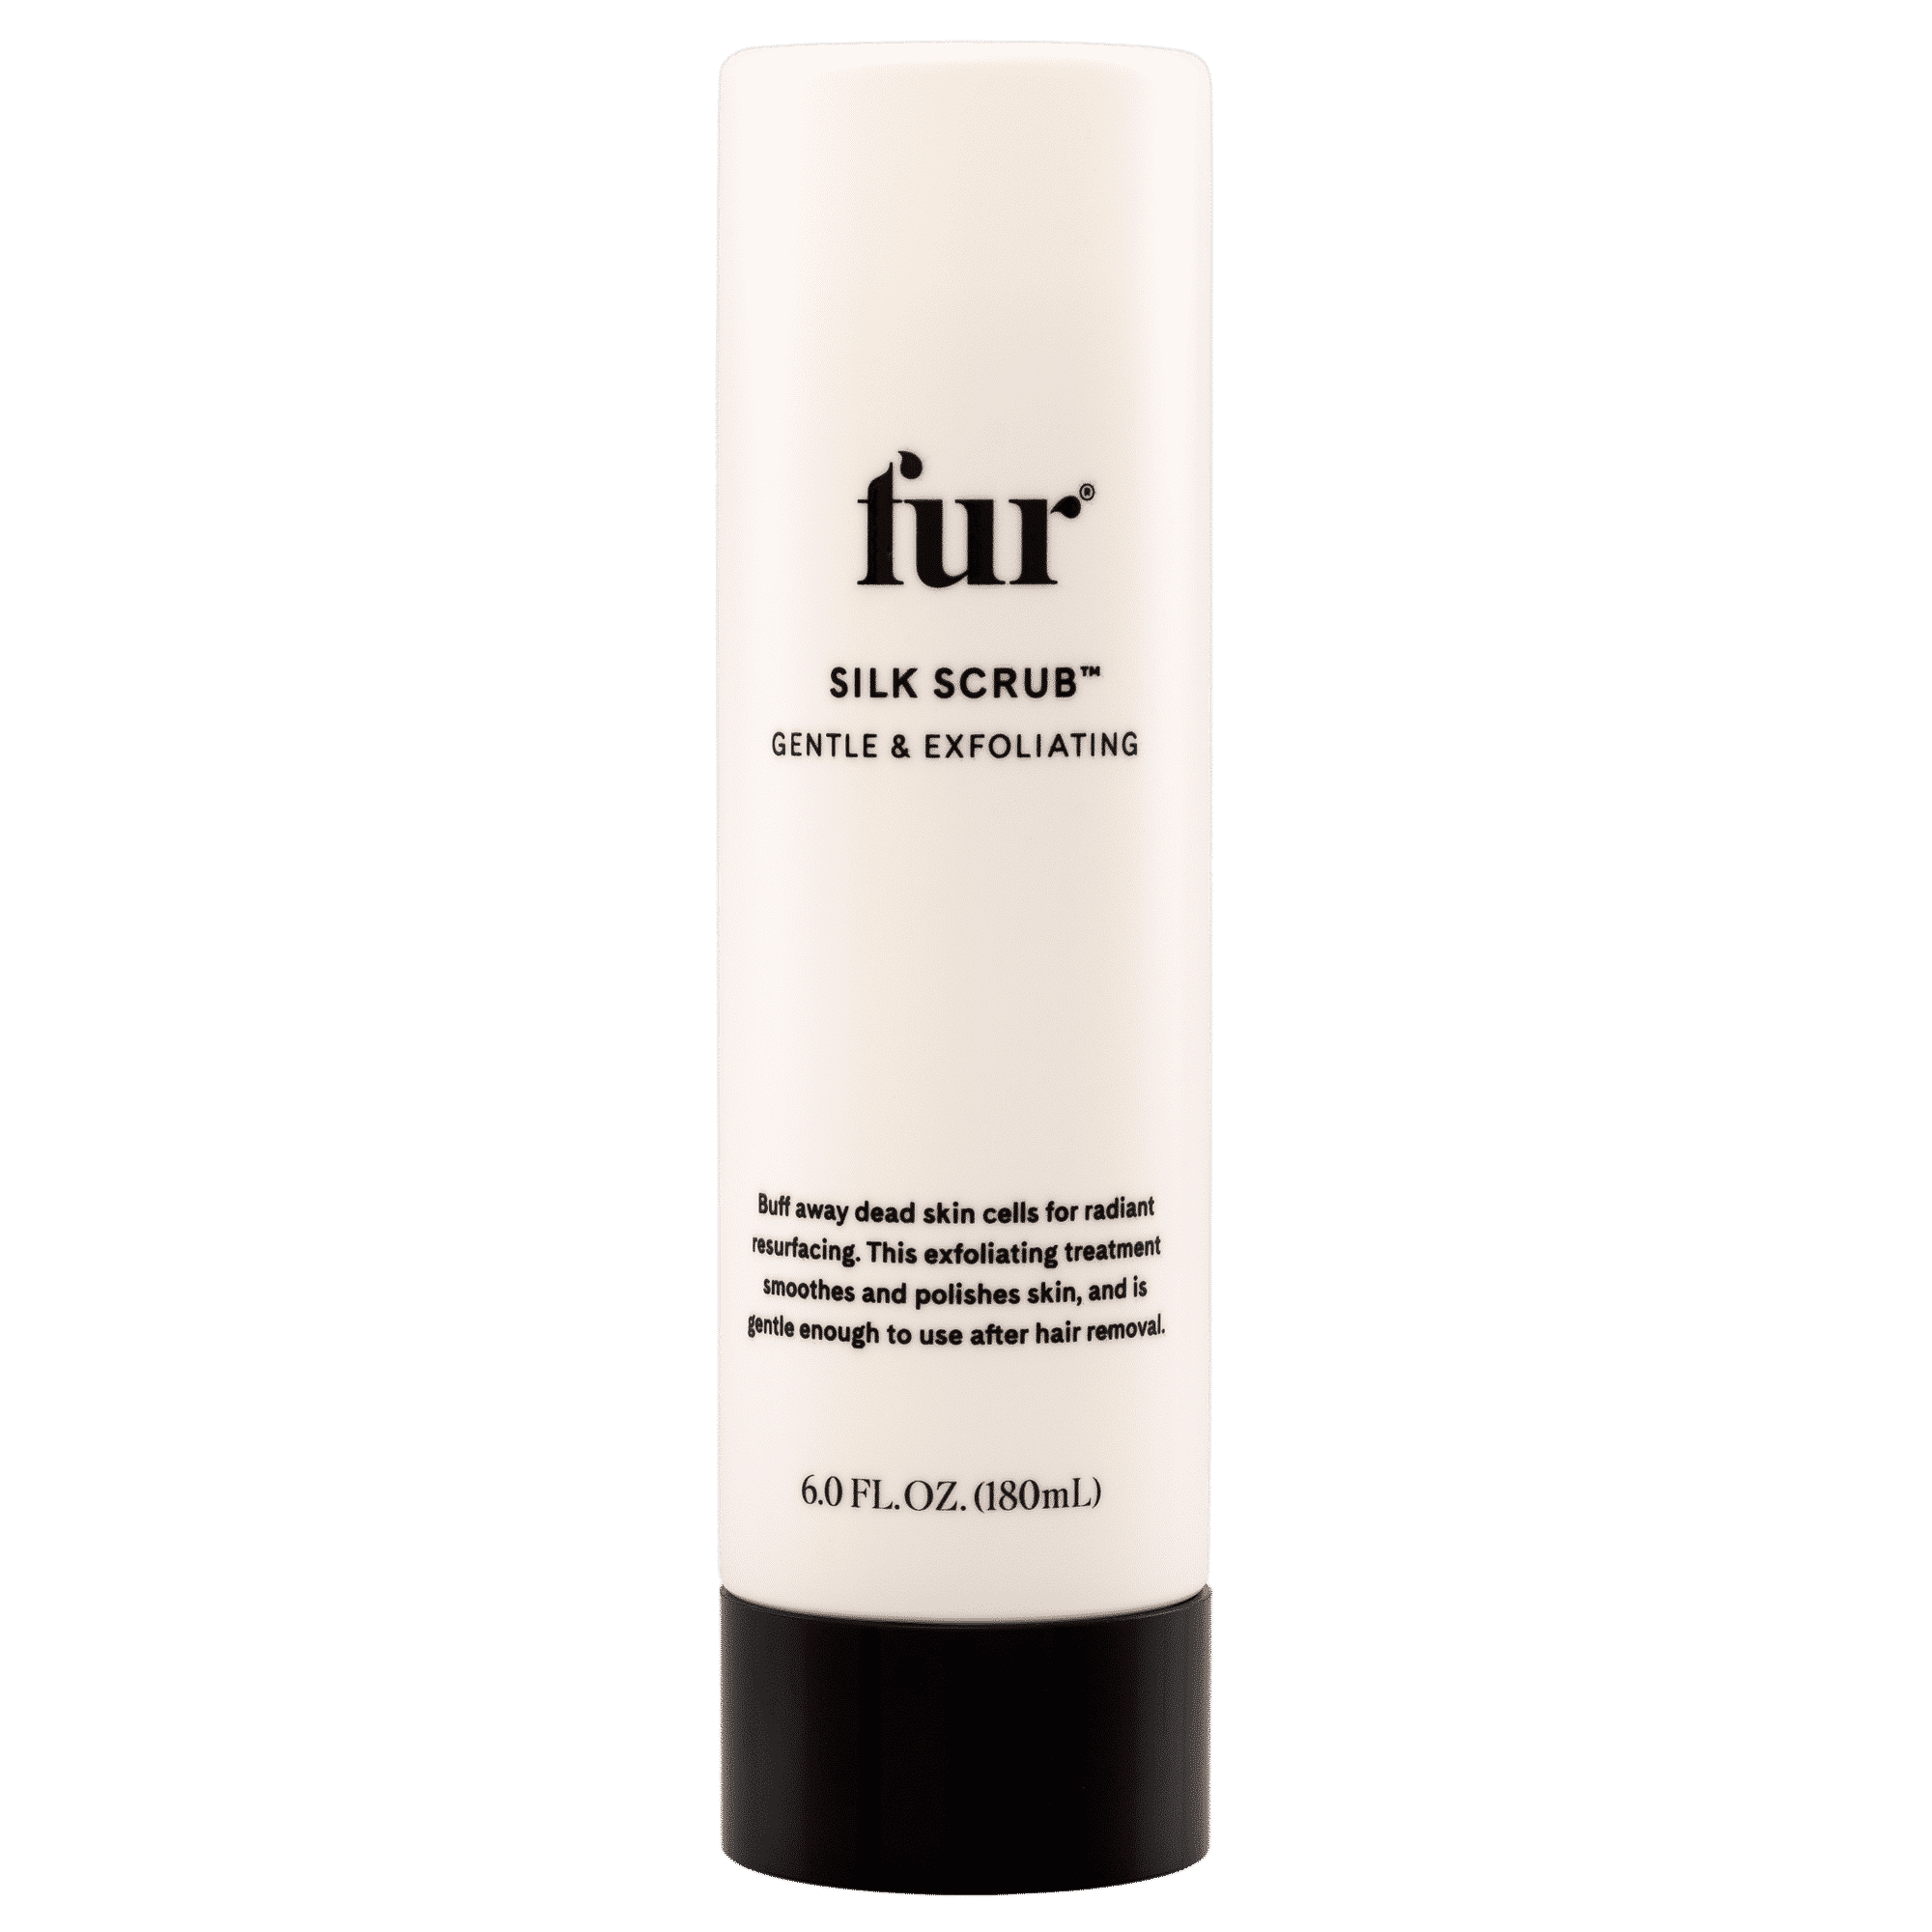 Fur Silk Scrub